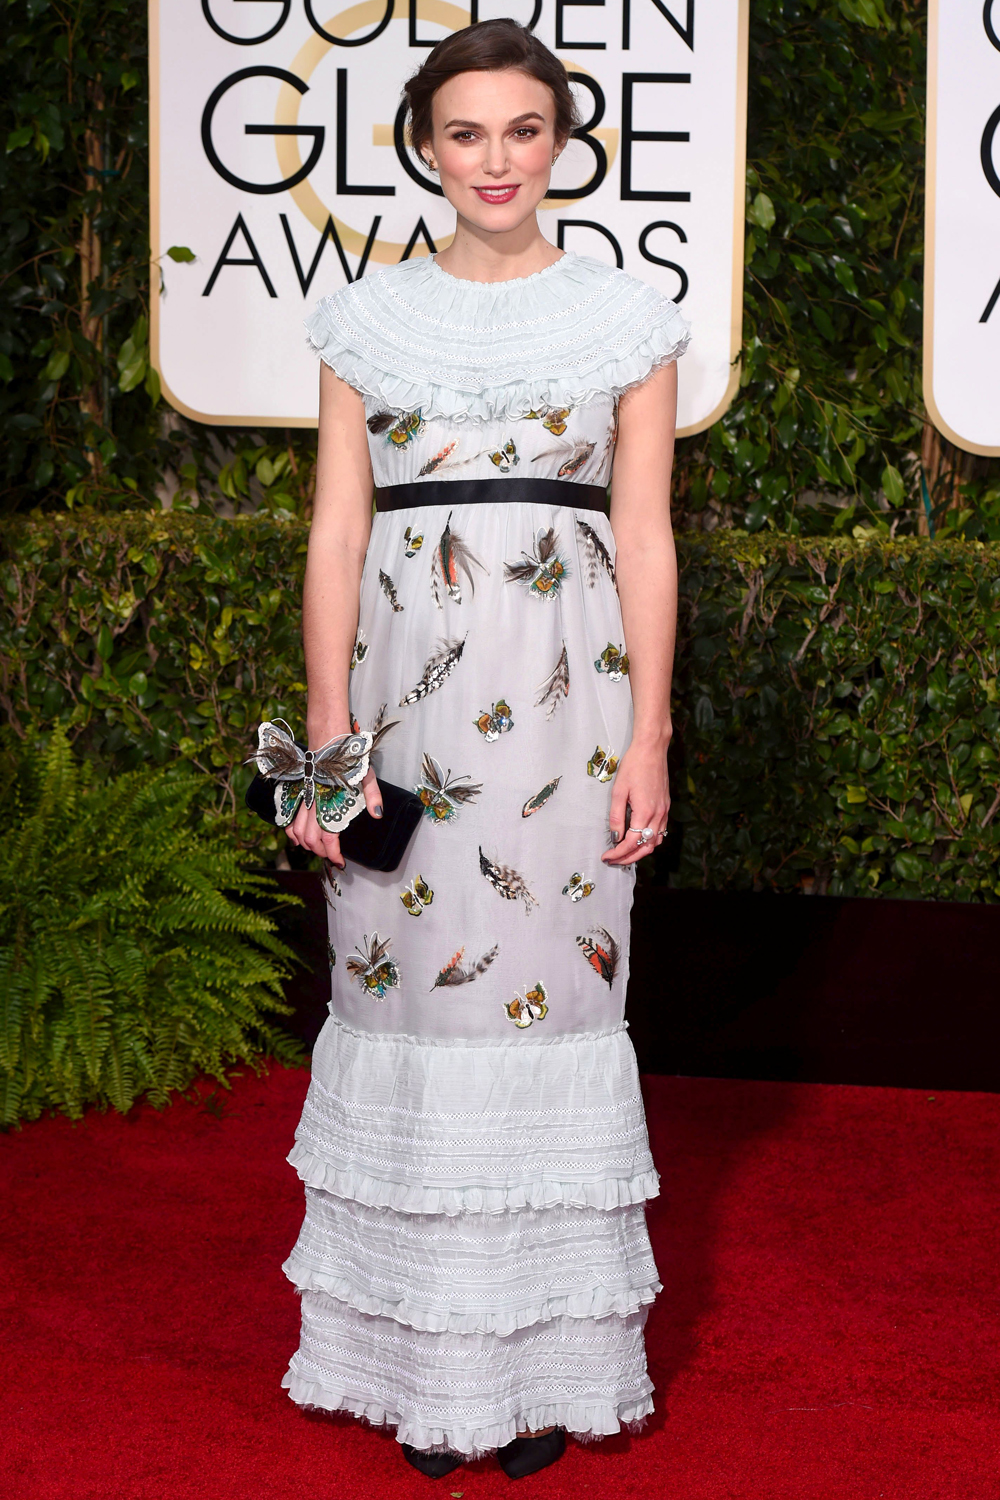 10 Stand-Out Fashion Looks From The Golden Globes